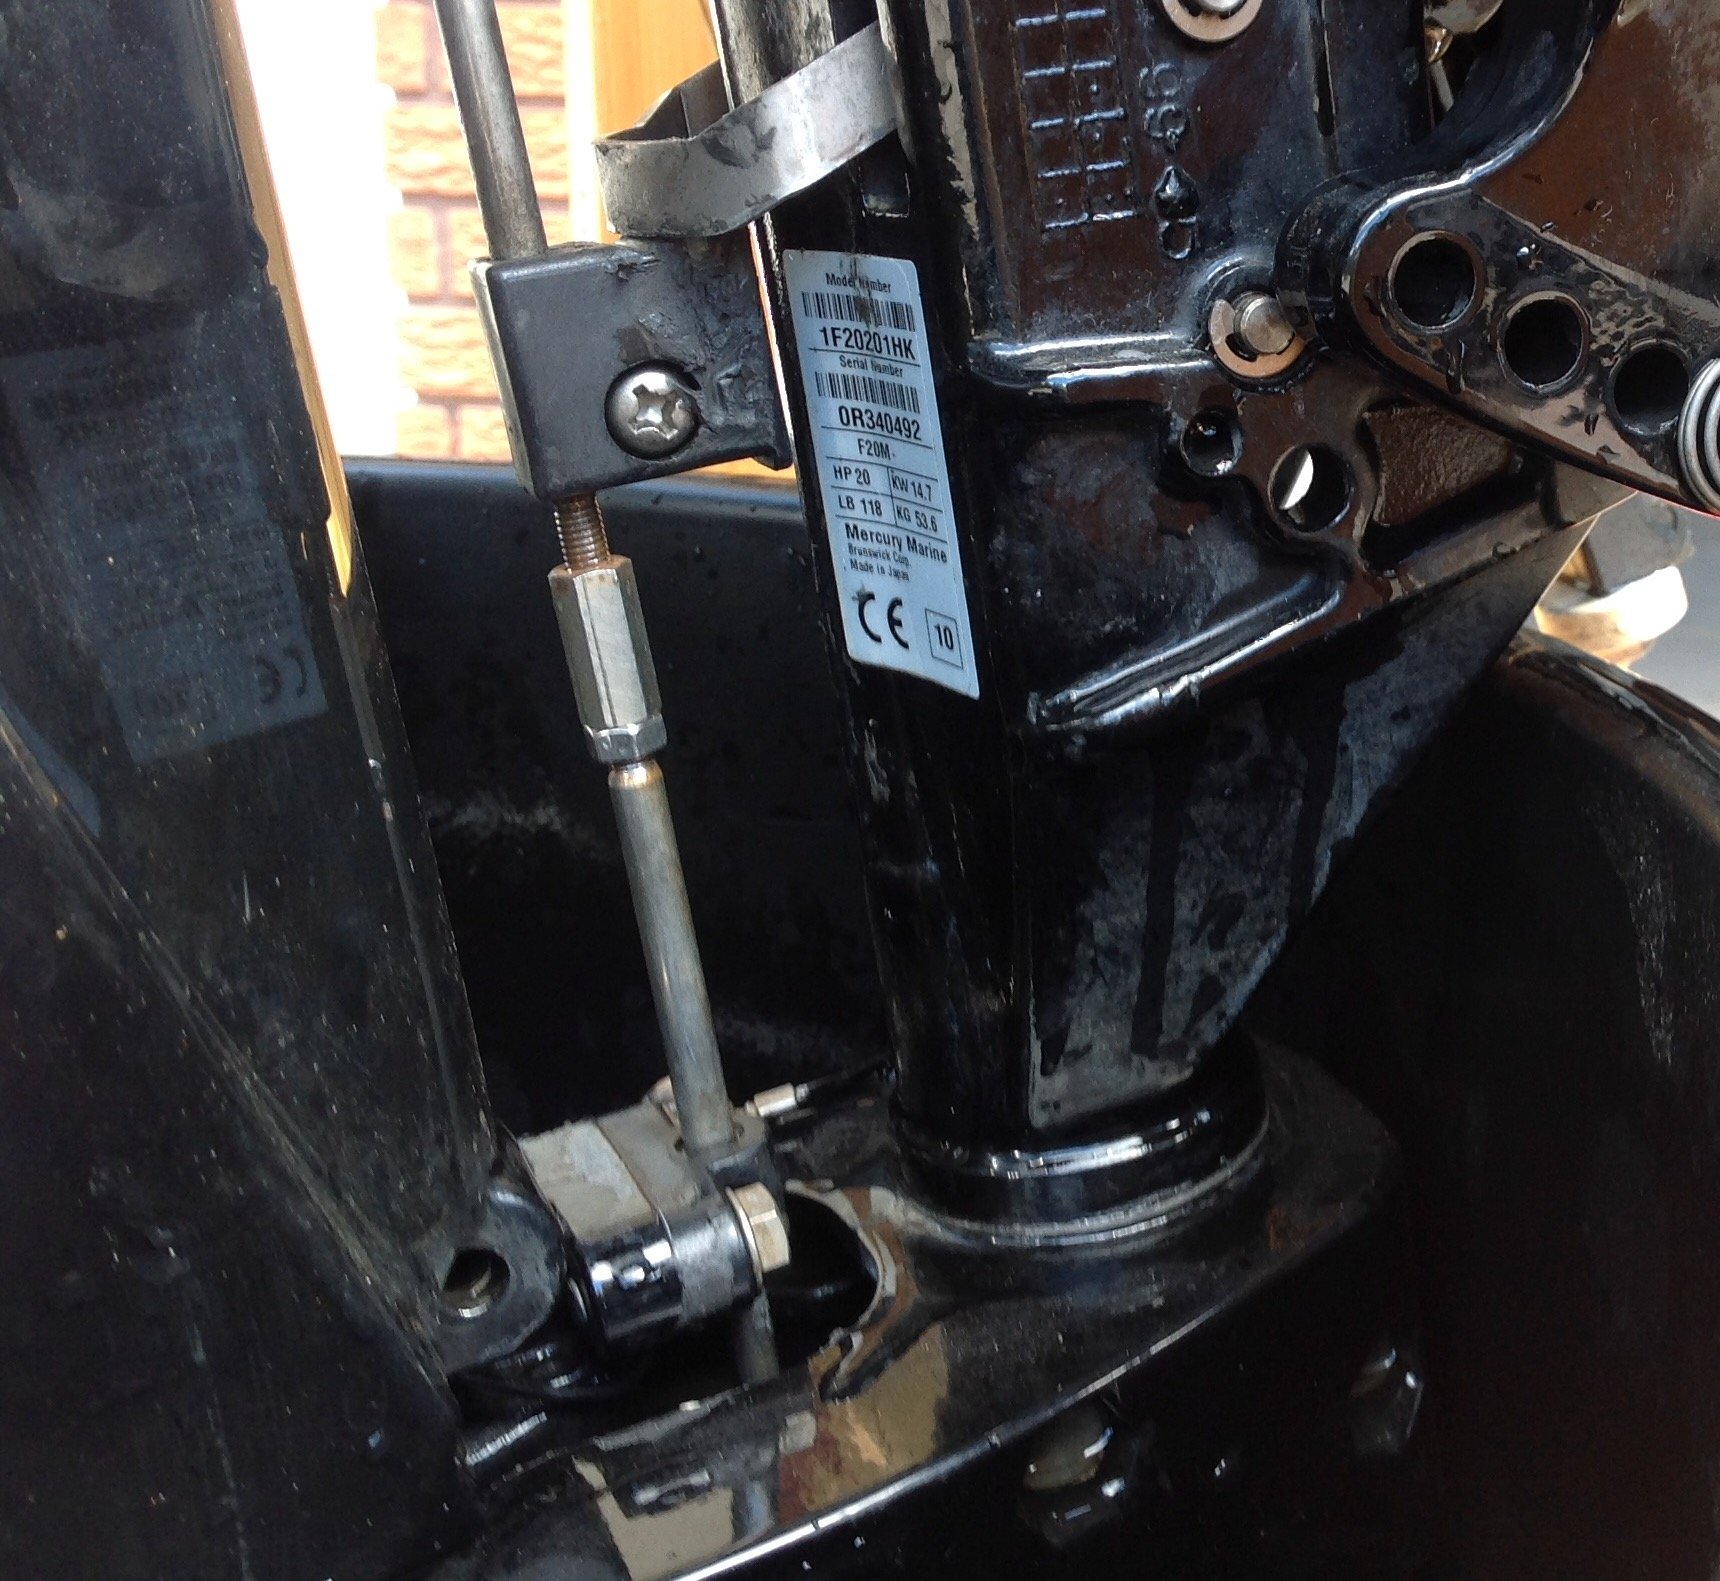 I have a 2010 Mercury Outboard 20 hp, serial no 0R340492